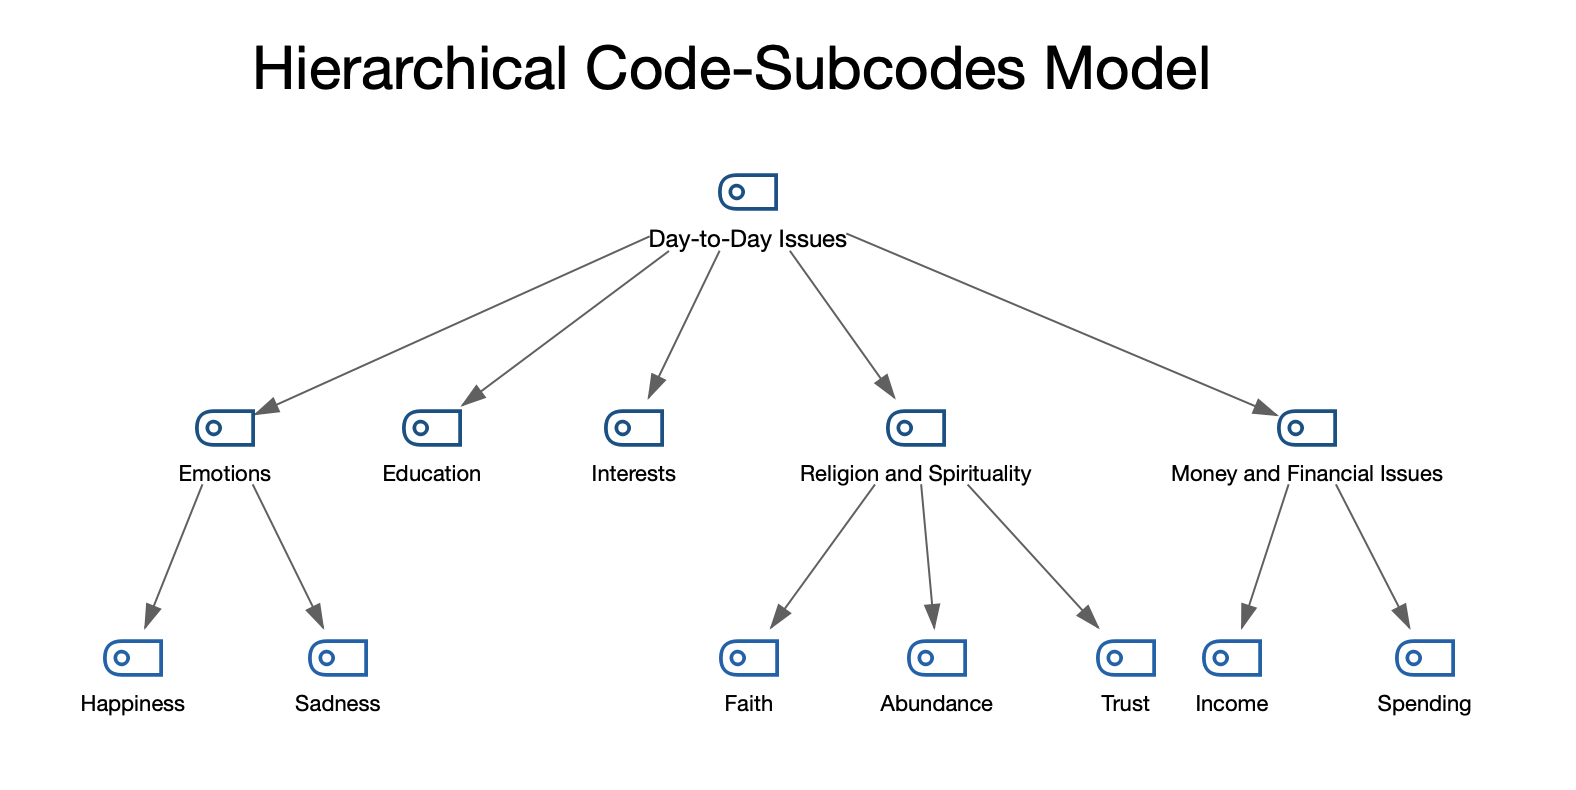 Example of a Hierarchical Code-Subcodes Model